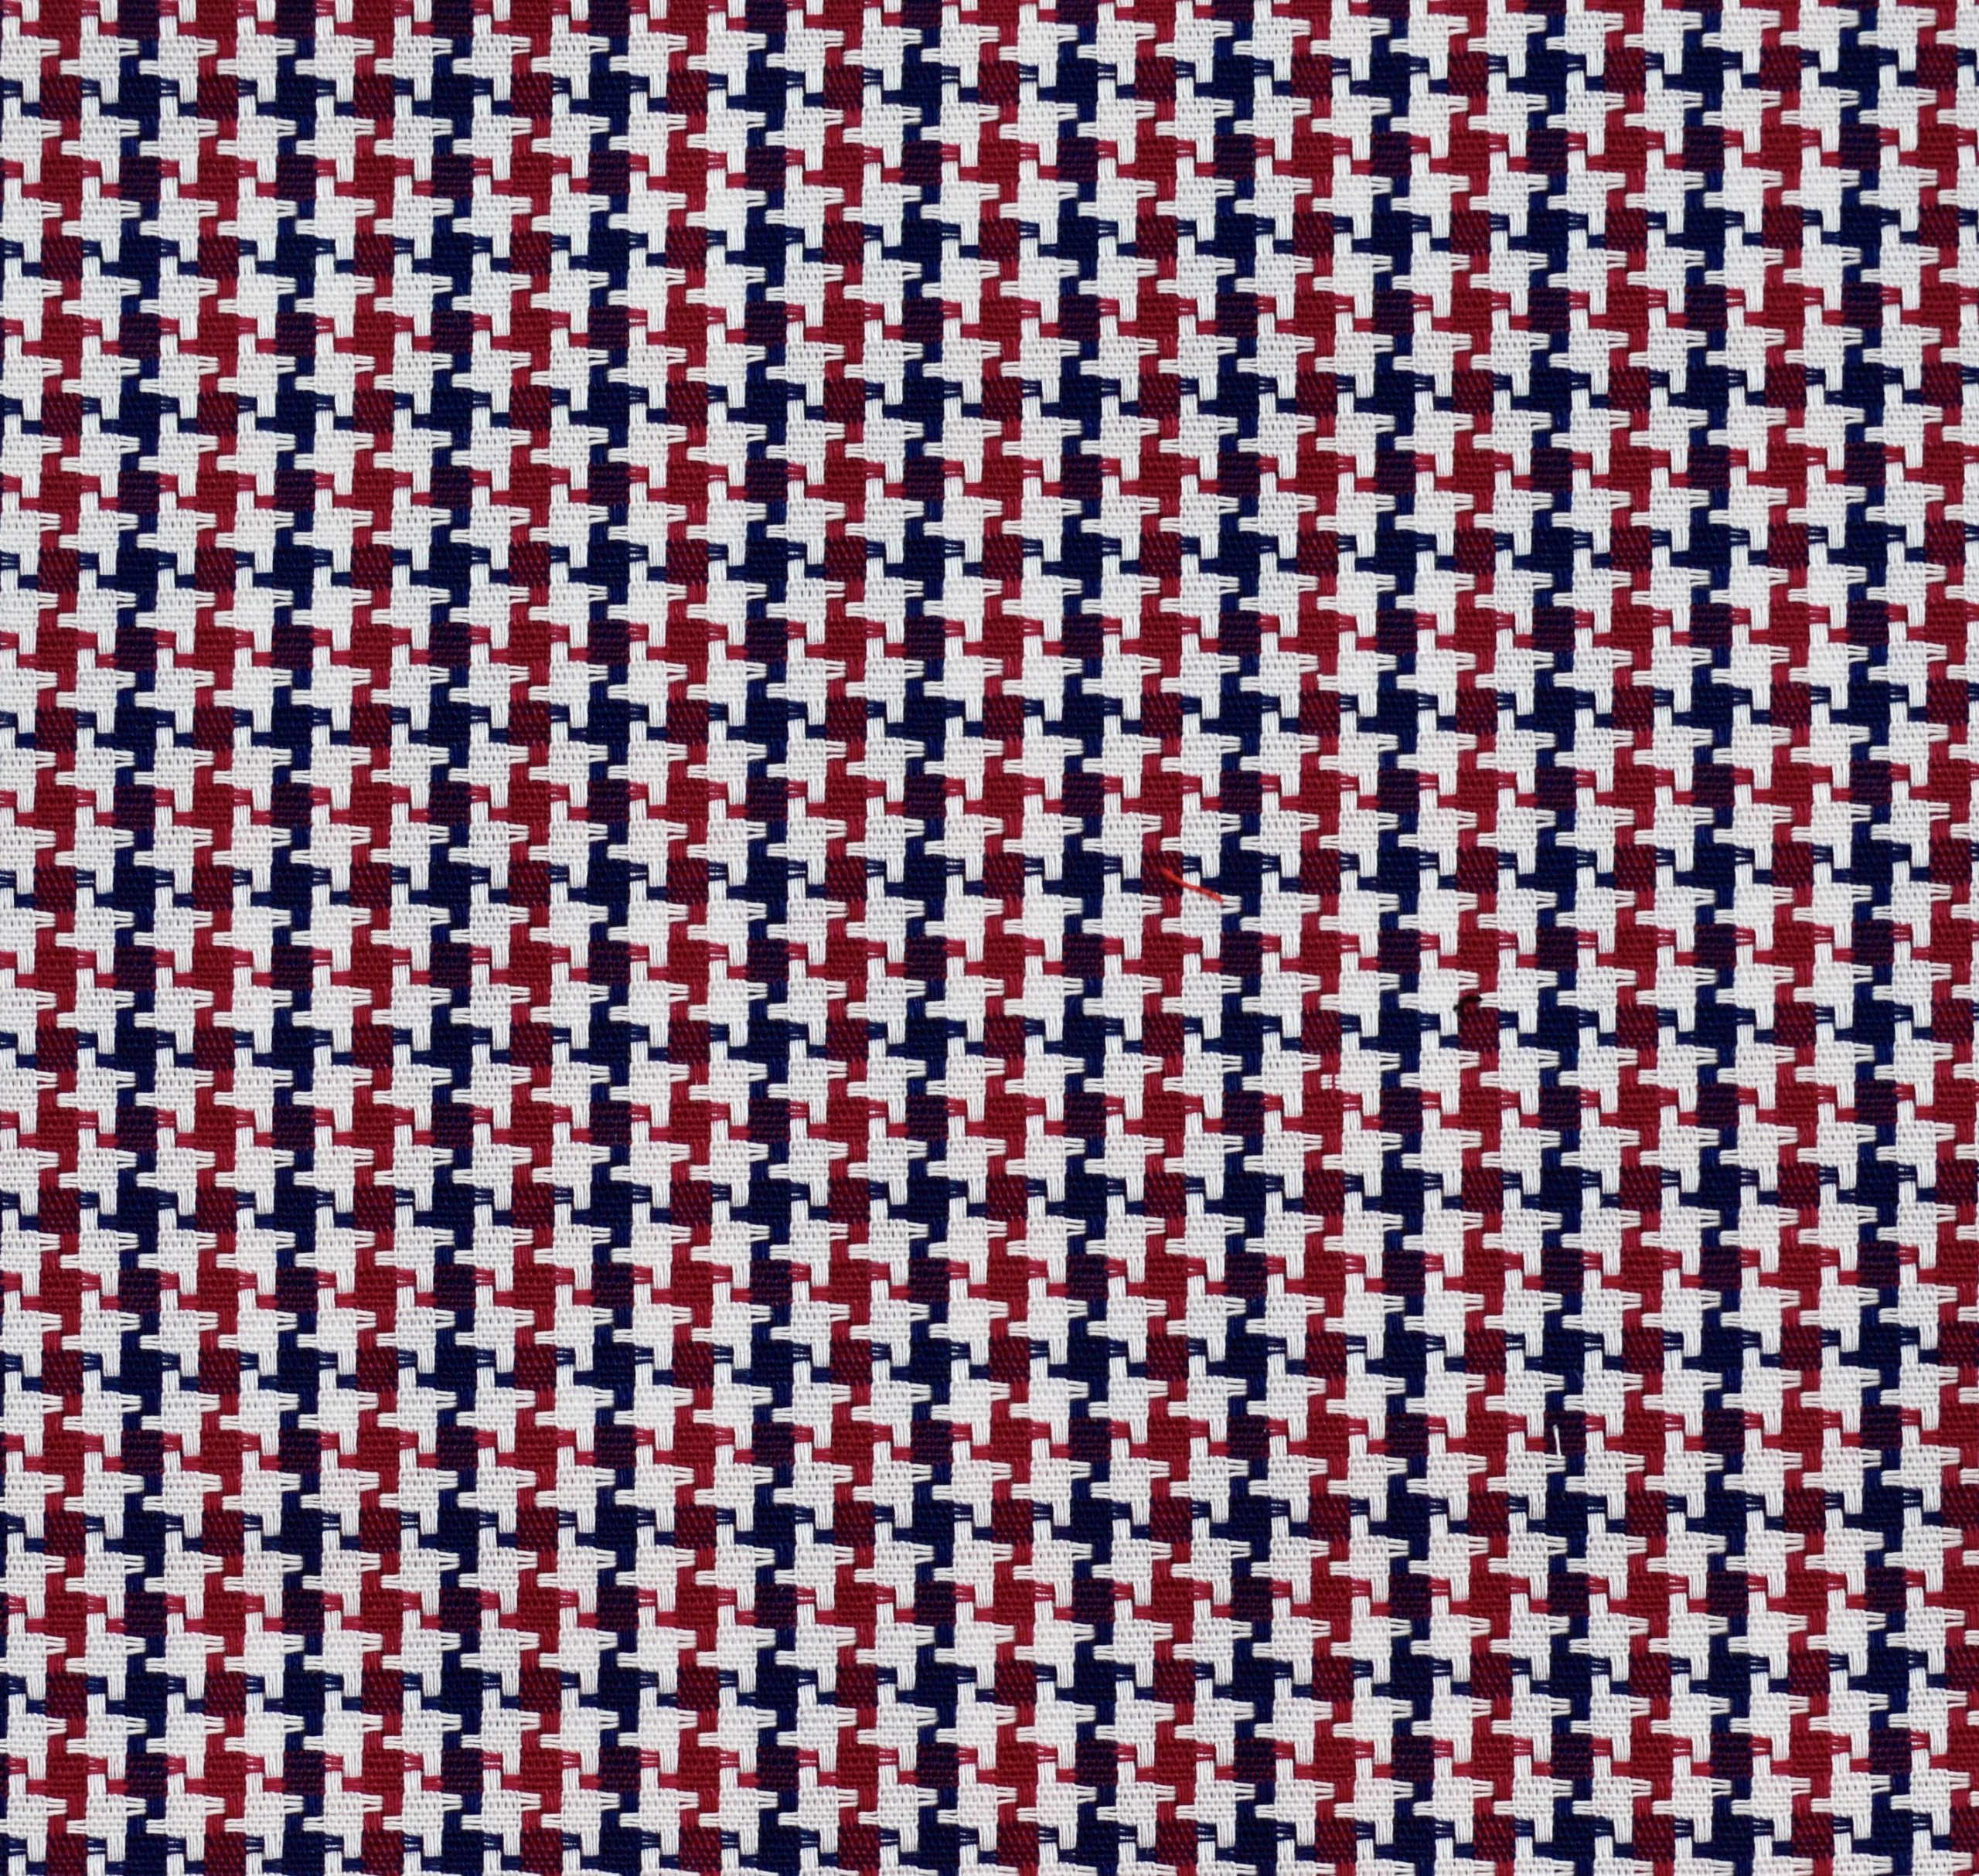 red-and-blue-houndstooth